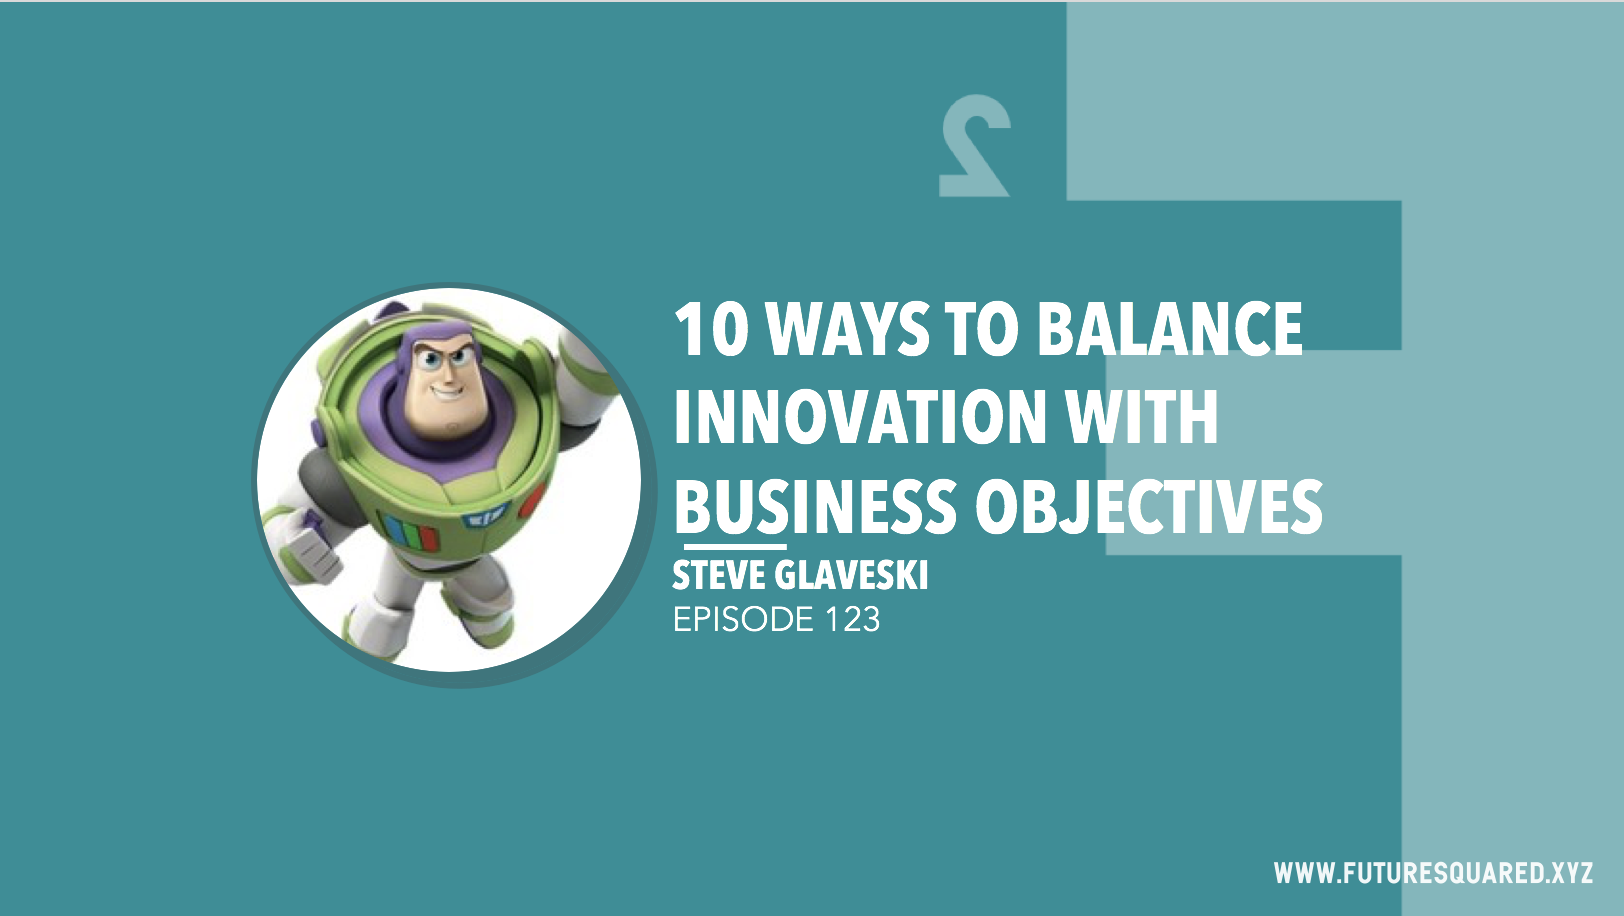 Future Squared Episode #123: 10 Ways to Balance Innovation with Business Objectives